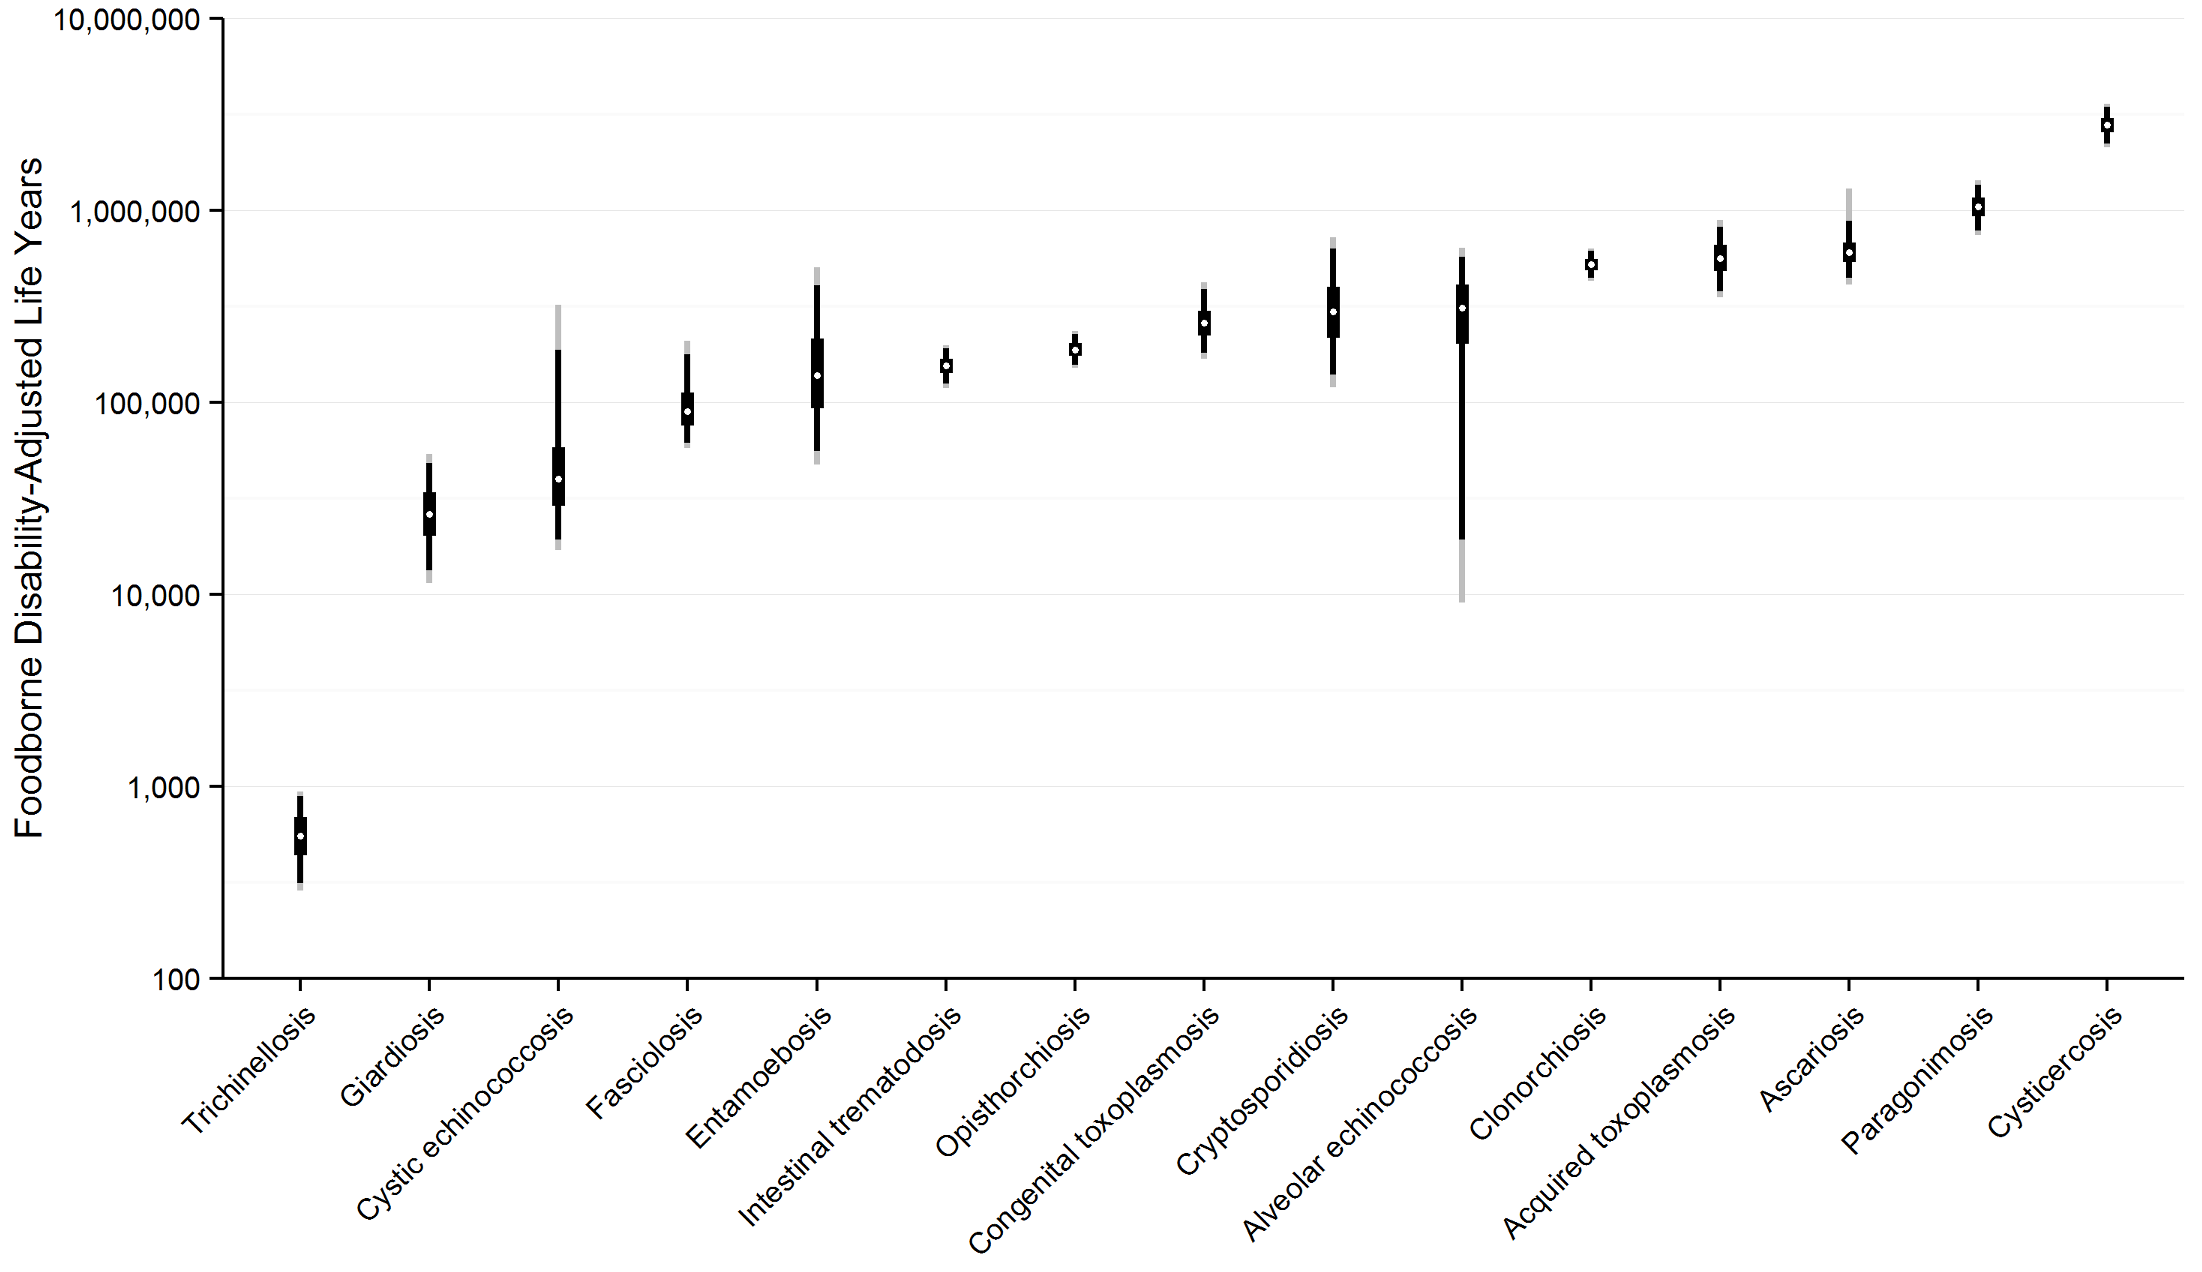 Worldwide foodborne Disability Adjusted Life Years by parasite: Disability Adjusted Life Years for each parasite acquired from contaminated food ranked from lowest to highest with 95% Uncertainty Intervals, 2010.